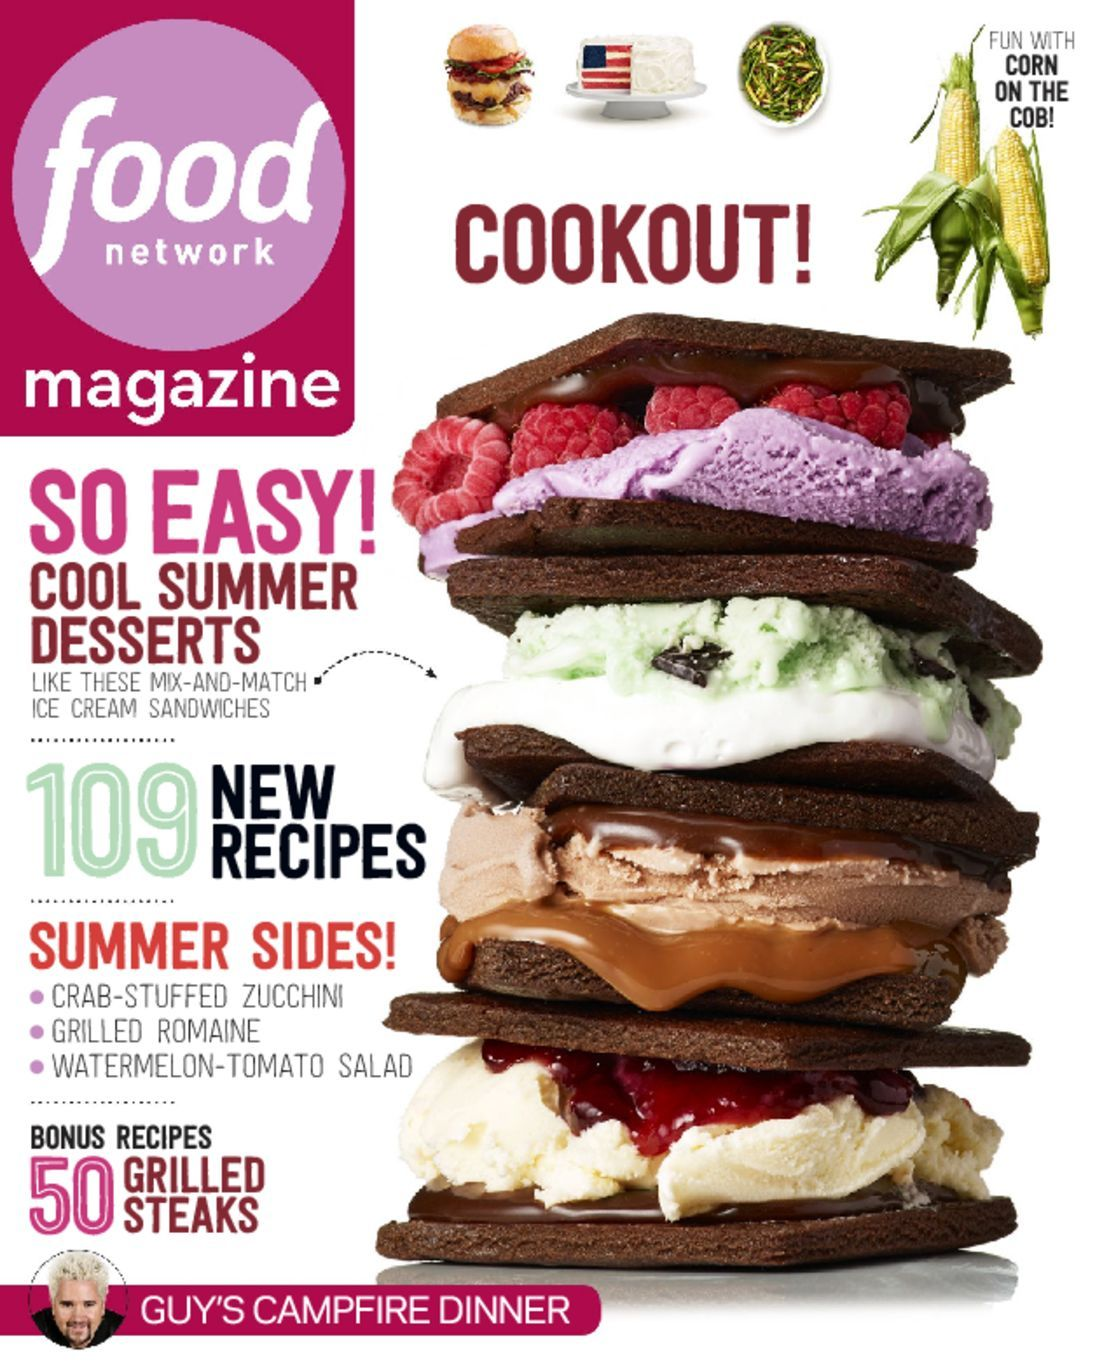 Food network magazine one of the many magazines that you can food network magazine one of the many magazines that you can download through the library forumfinder Image collections